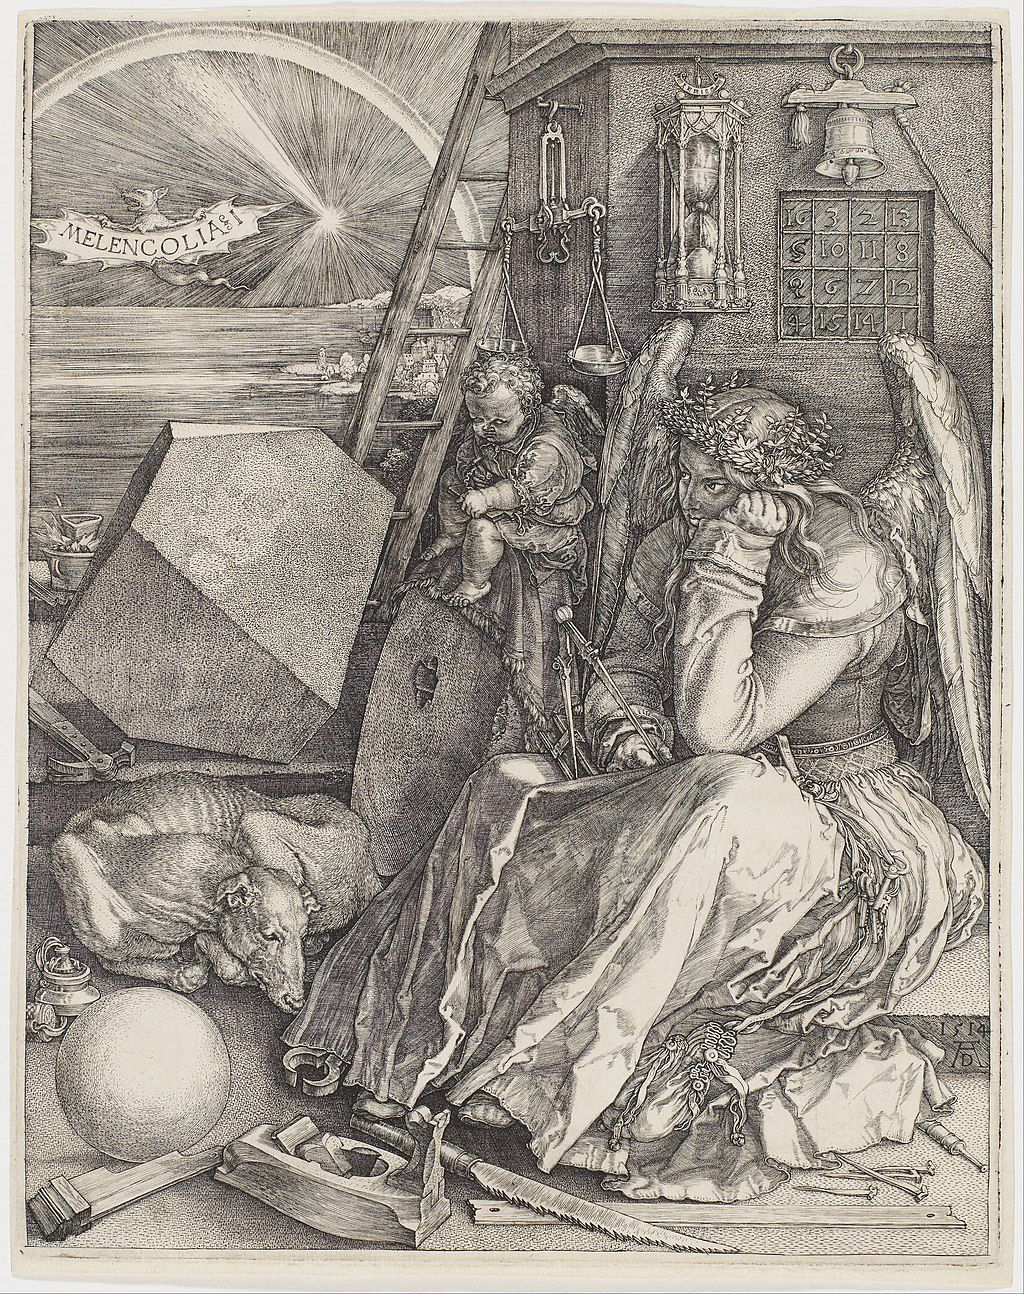 Melancholy, or the Spirit of Man in Search of the Secret of the Universe. This Dürer's etching, dating from 1514 according to the numbers in the square in the top right corner, depicts man contemplating the nature of the world in the state of melancholy, which in medieval times was associated with black bile and the planet Saturn. The winged man prefigures Johannes Kepler's interrogations as he calculates how to express the underlying harmony of the cosmos using spheres and polyhedra. The bright light in the sky is the great comet that was observed in the winter of 1513-1514 (Jean-Pierre Luminet, Science, Art and Geometrical Imagination)